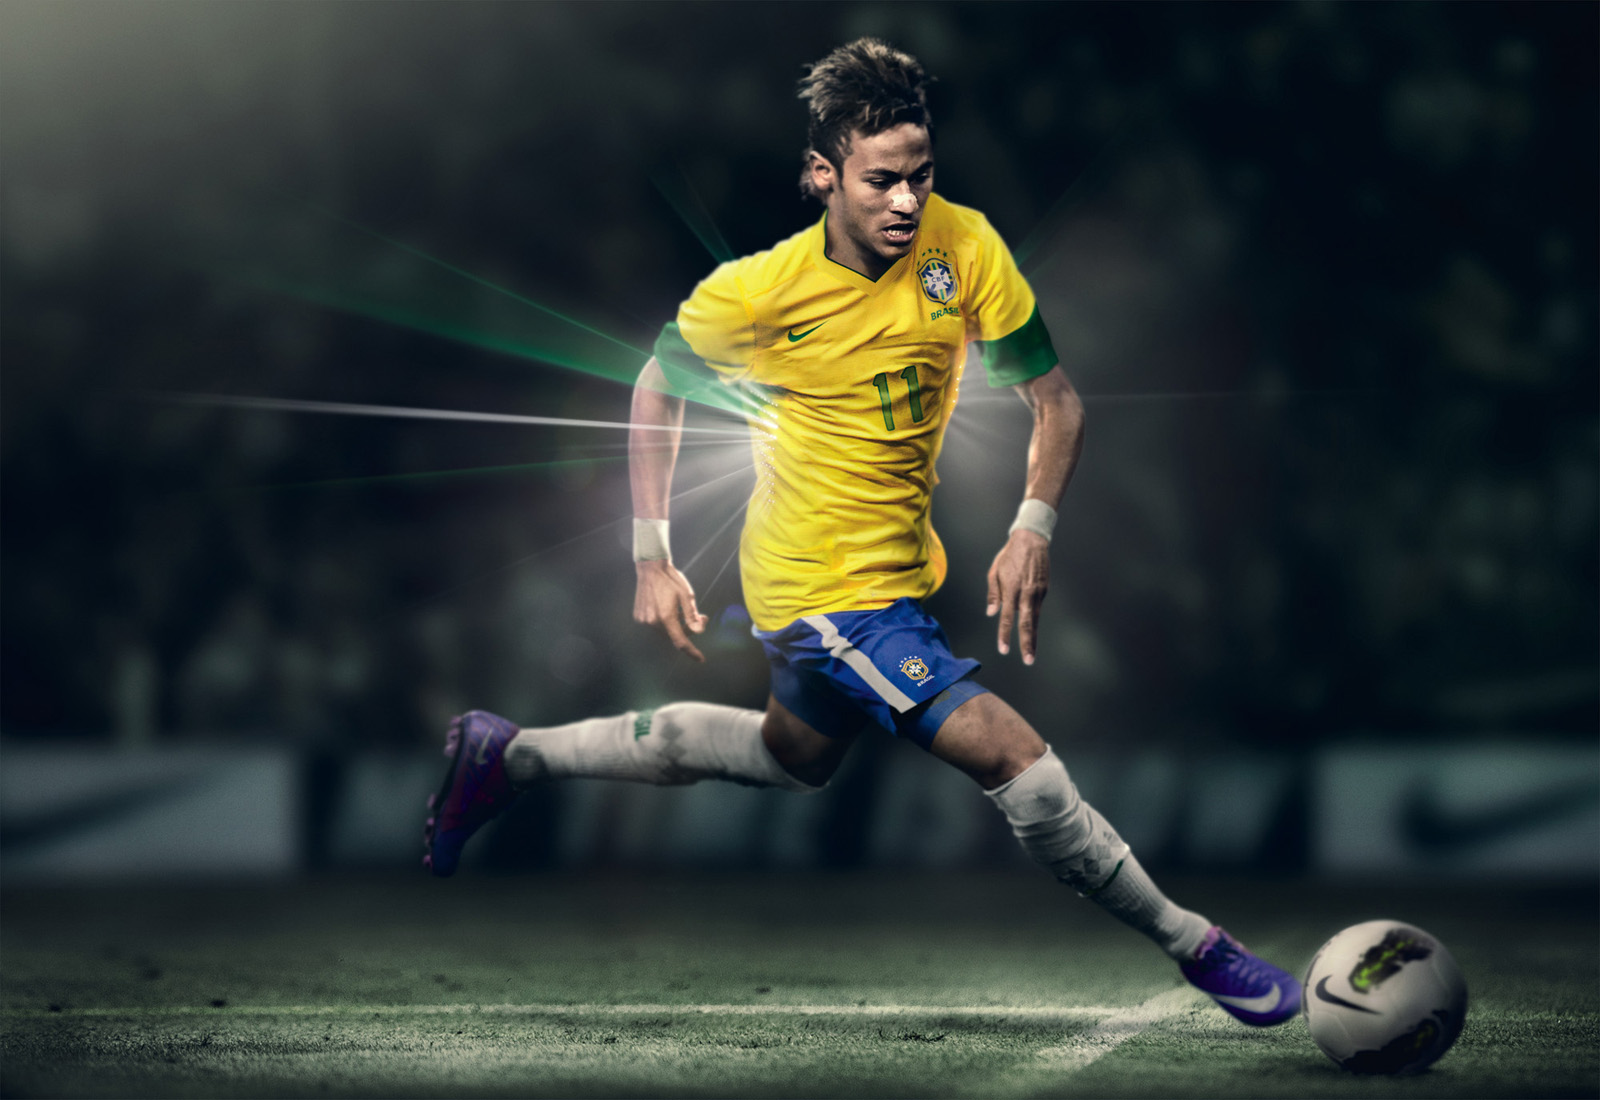 Hd wallpaper neymar - Neymar Hd Wallpaper